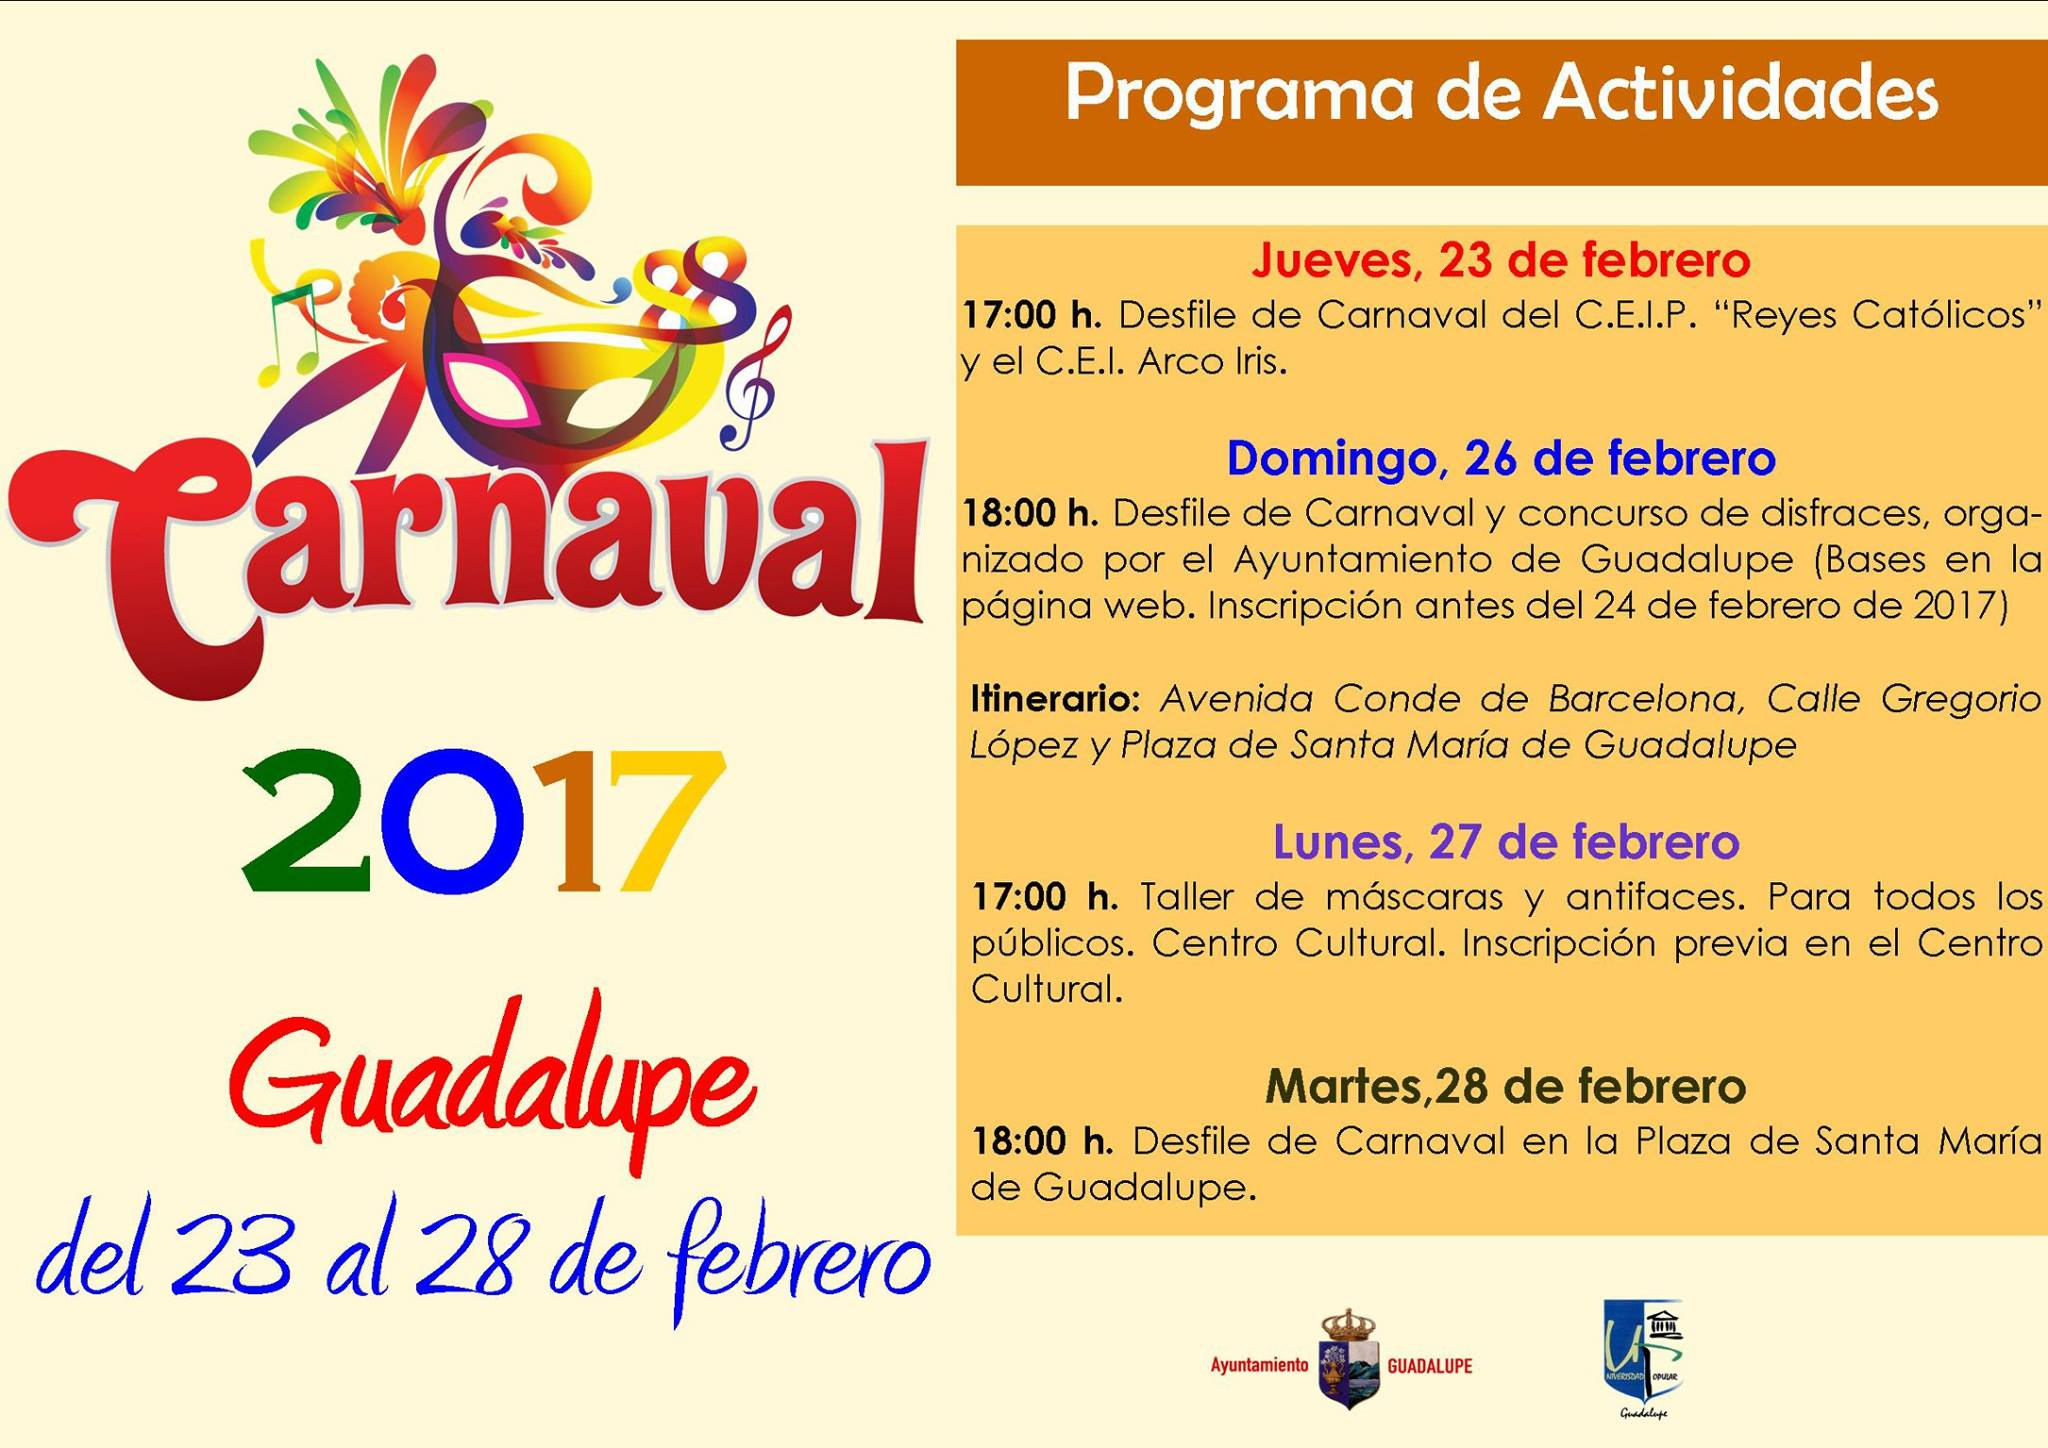 Carnaval 2017 - Guadalupe